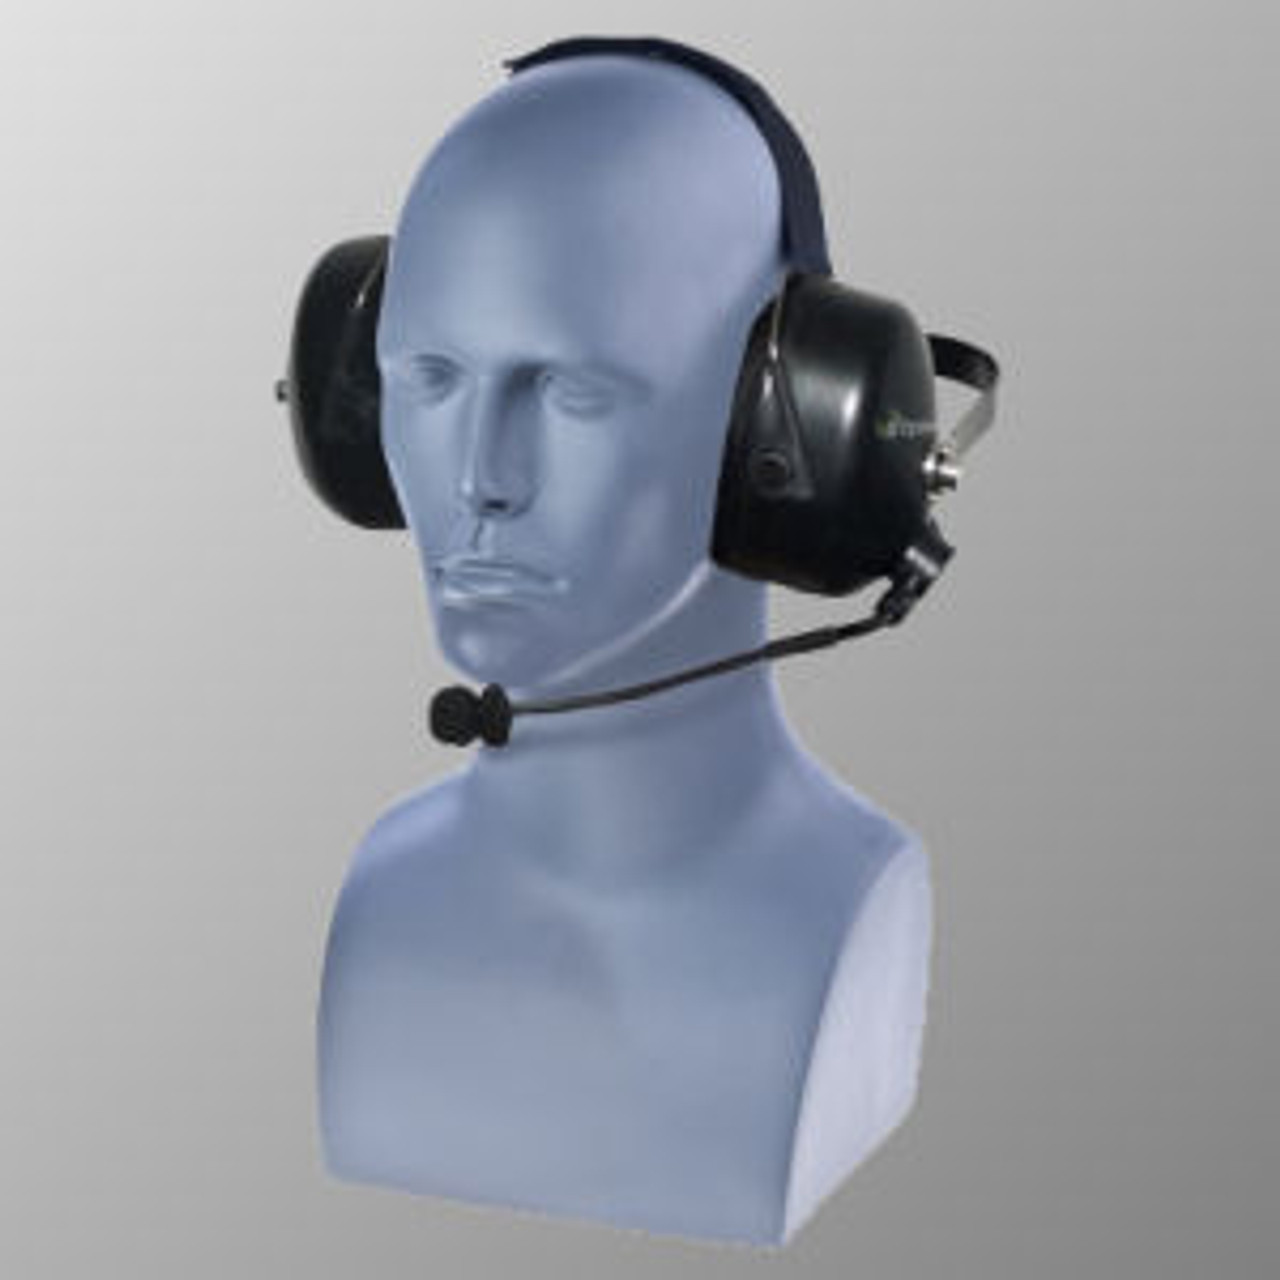 Bendix King DPHX Noise Canceling Double Muff Behind The Head Headset